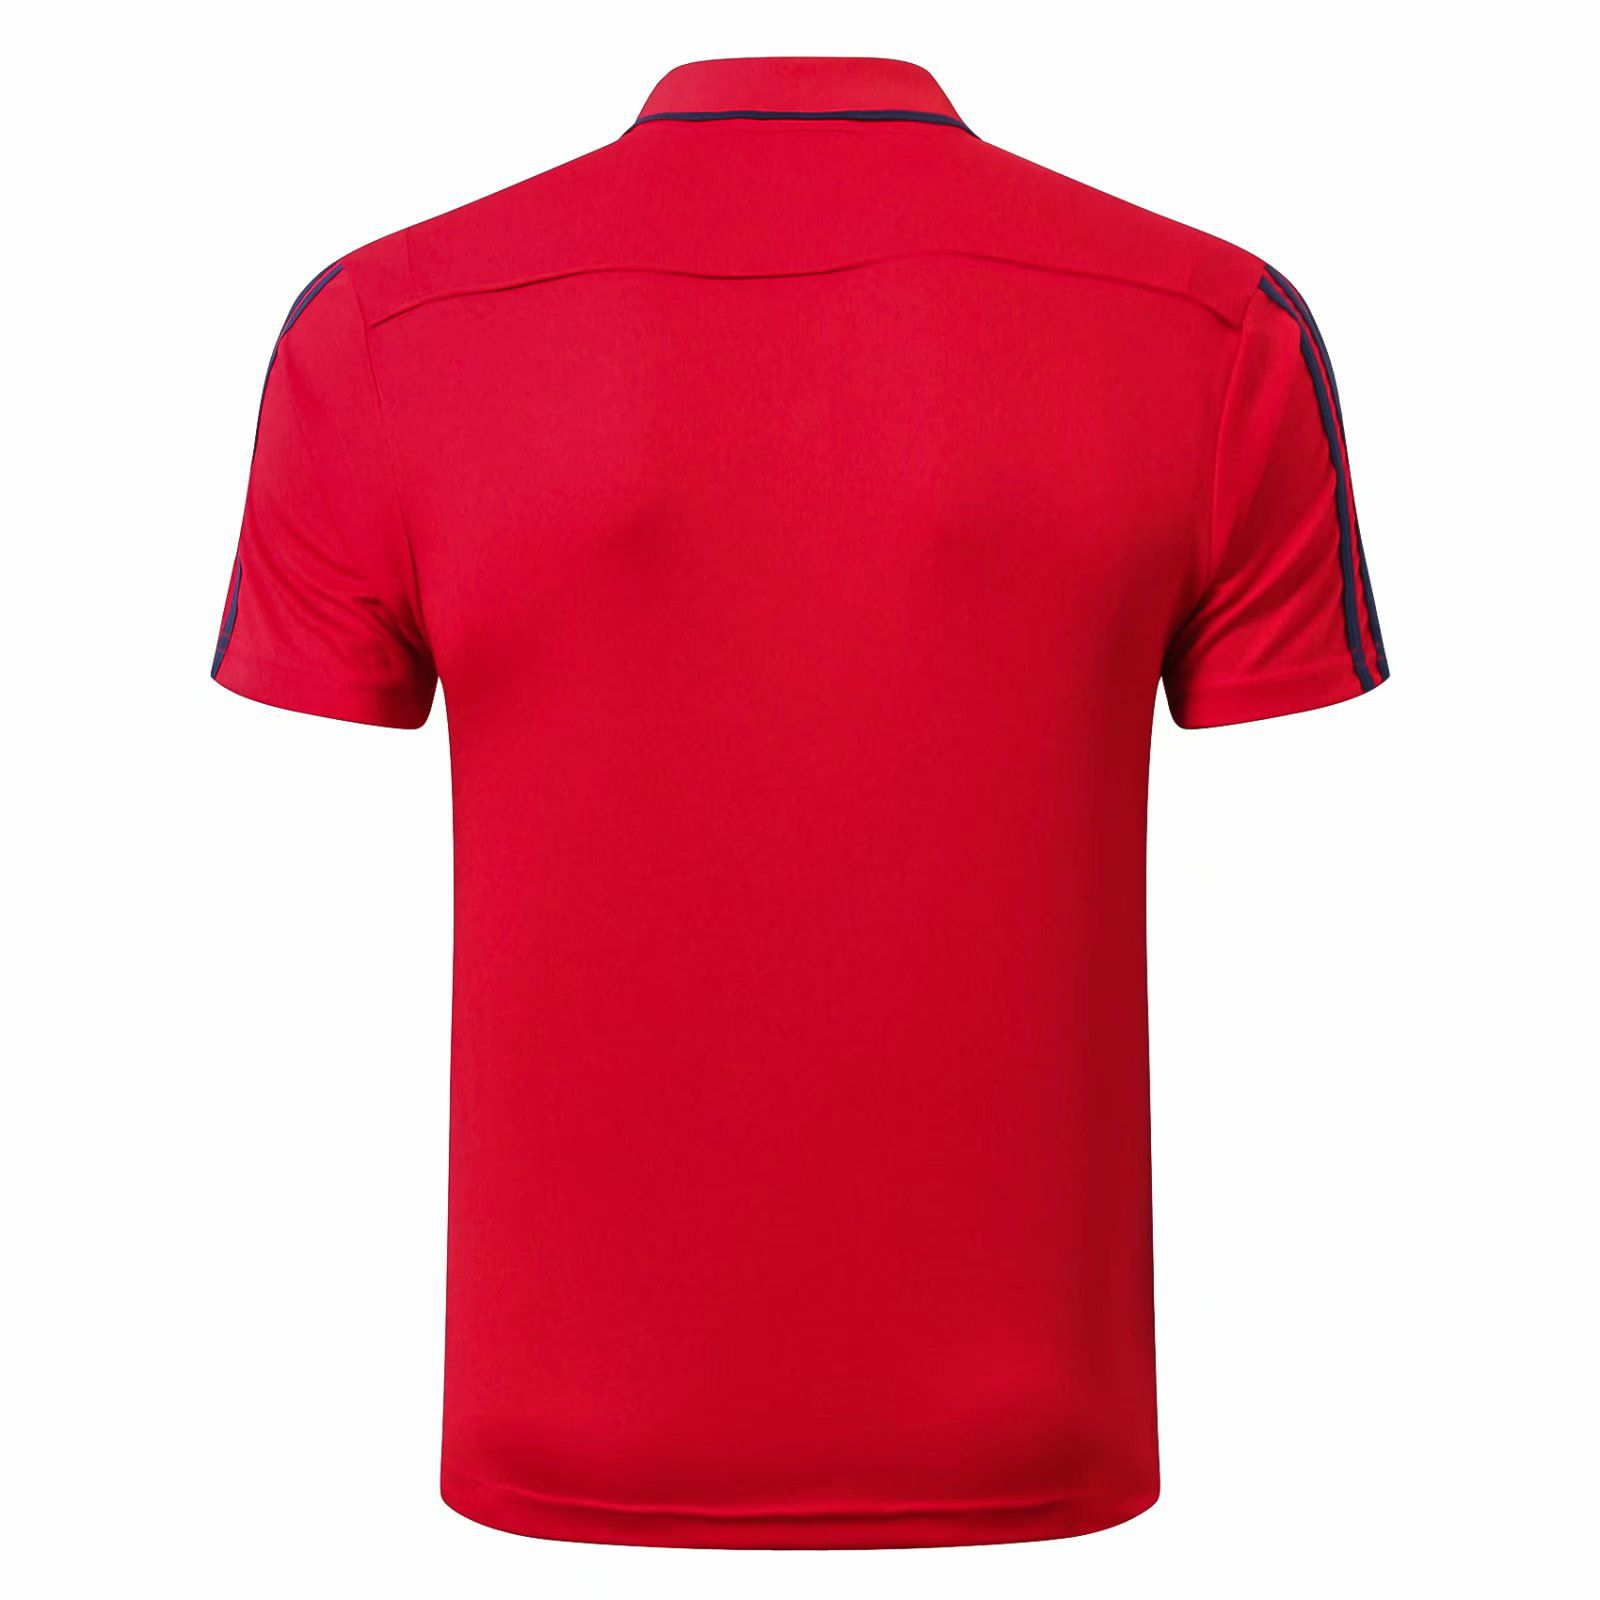 ARSENAL CAMISA POLO 2020